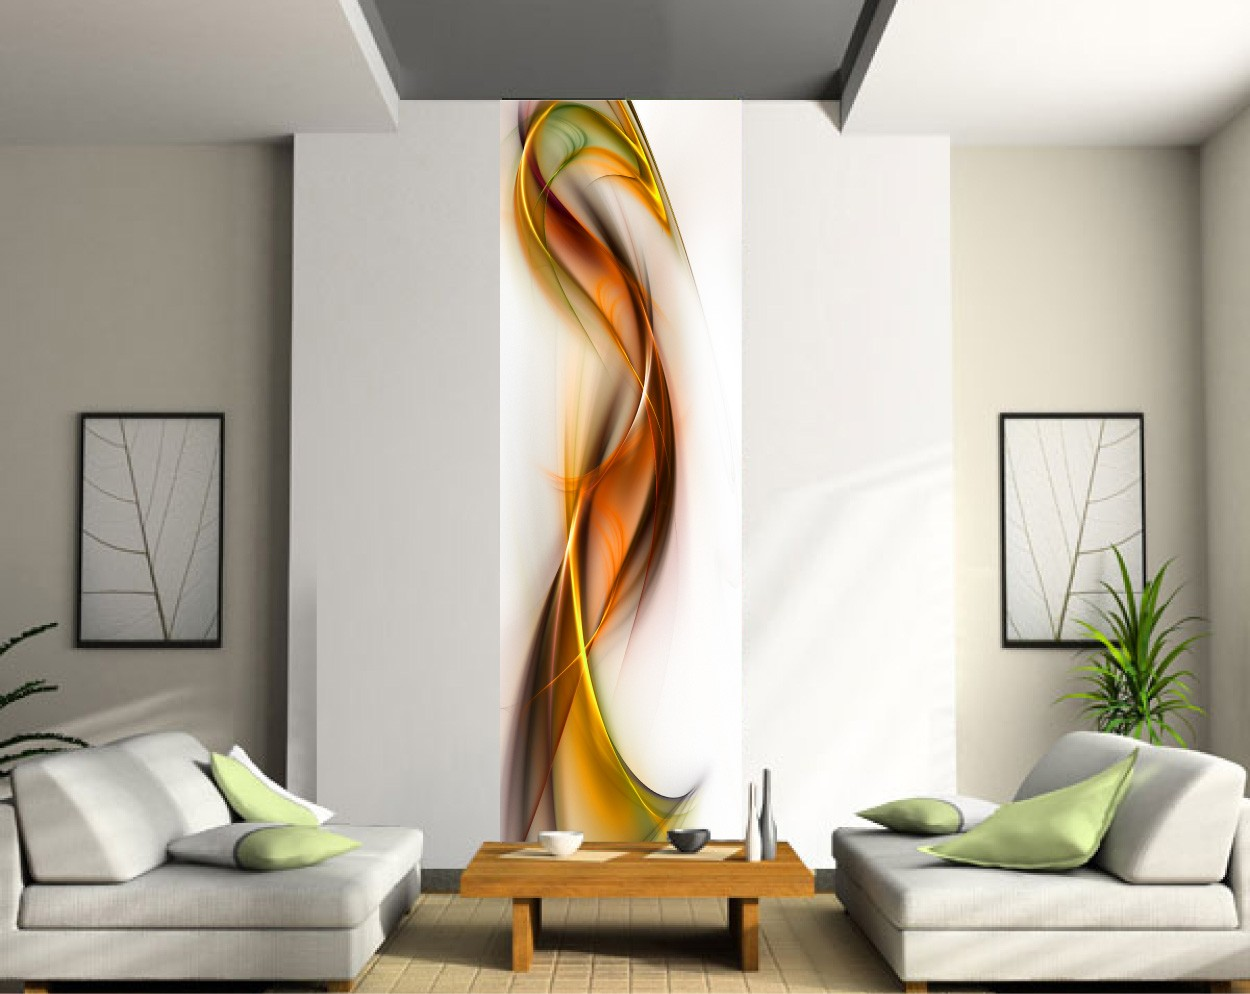 Poster trompe l oeil latest waterfall view trompe luoeil - Grand poster mural pas cher ...